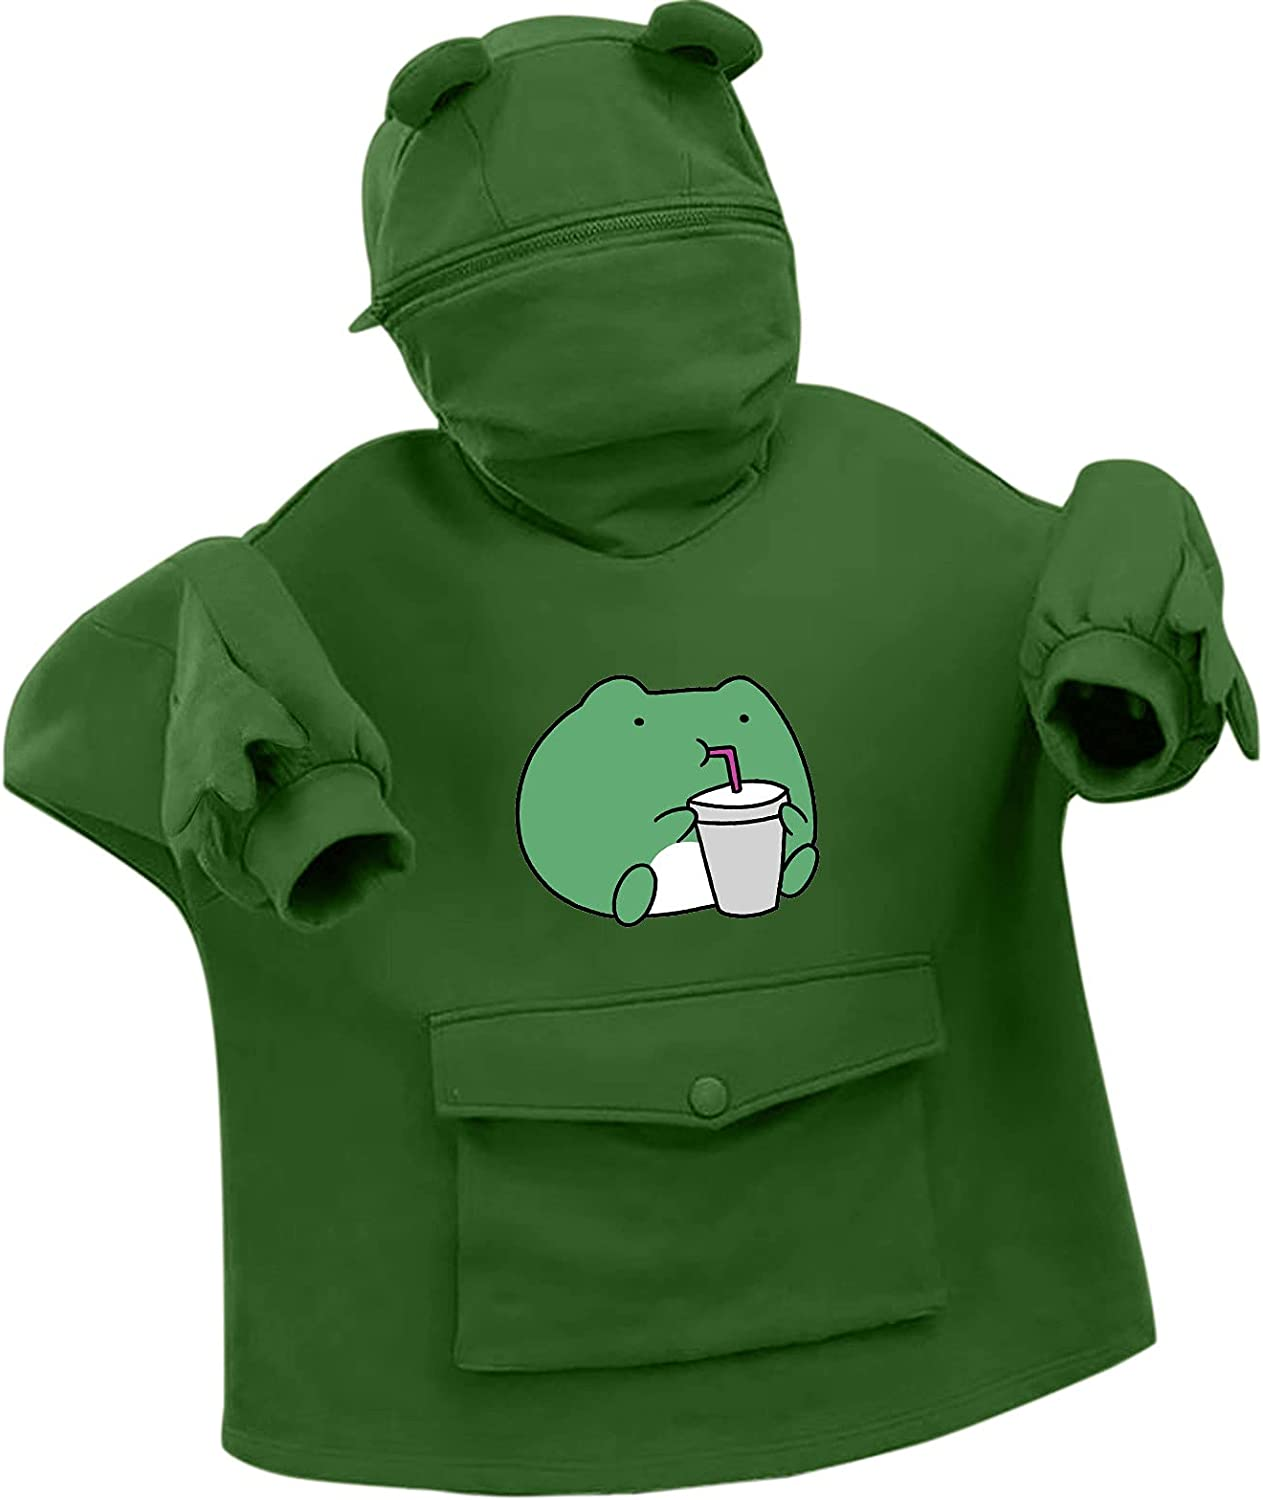 AODONG Hoodies for Womens Cute Hooded Pullover Tops with Pocket Frog Printed Long Sleeves Sweatshirt for Teen Girl